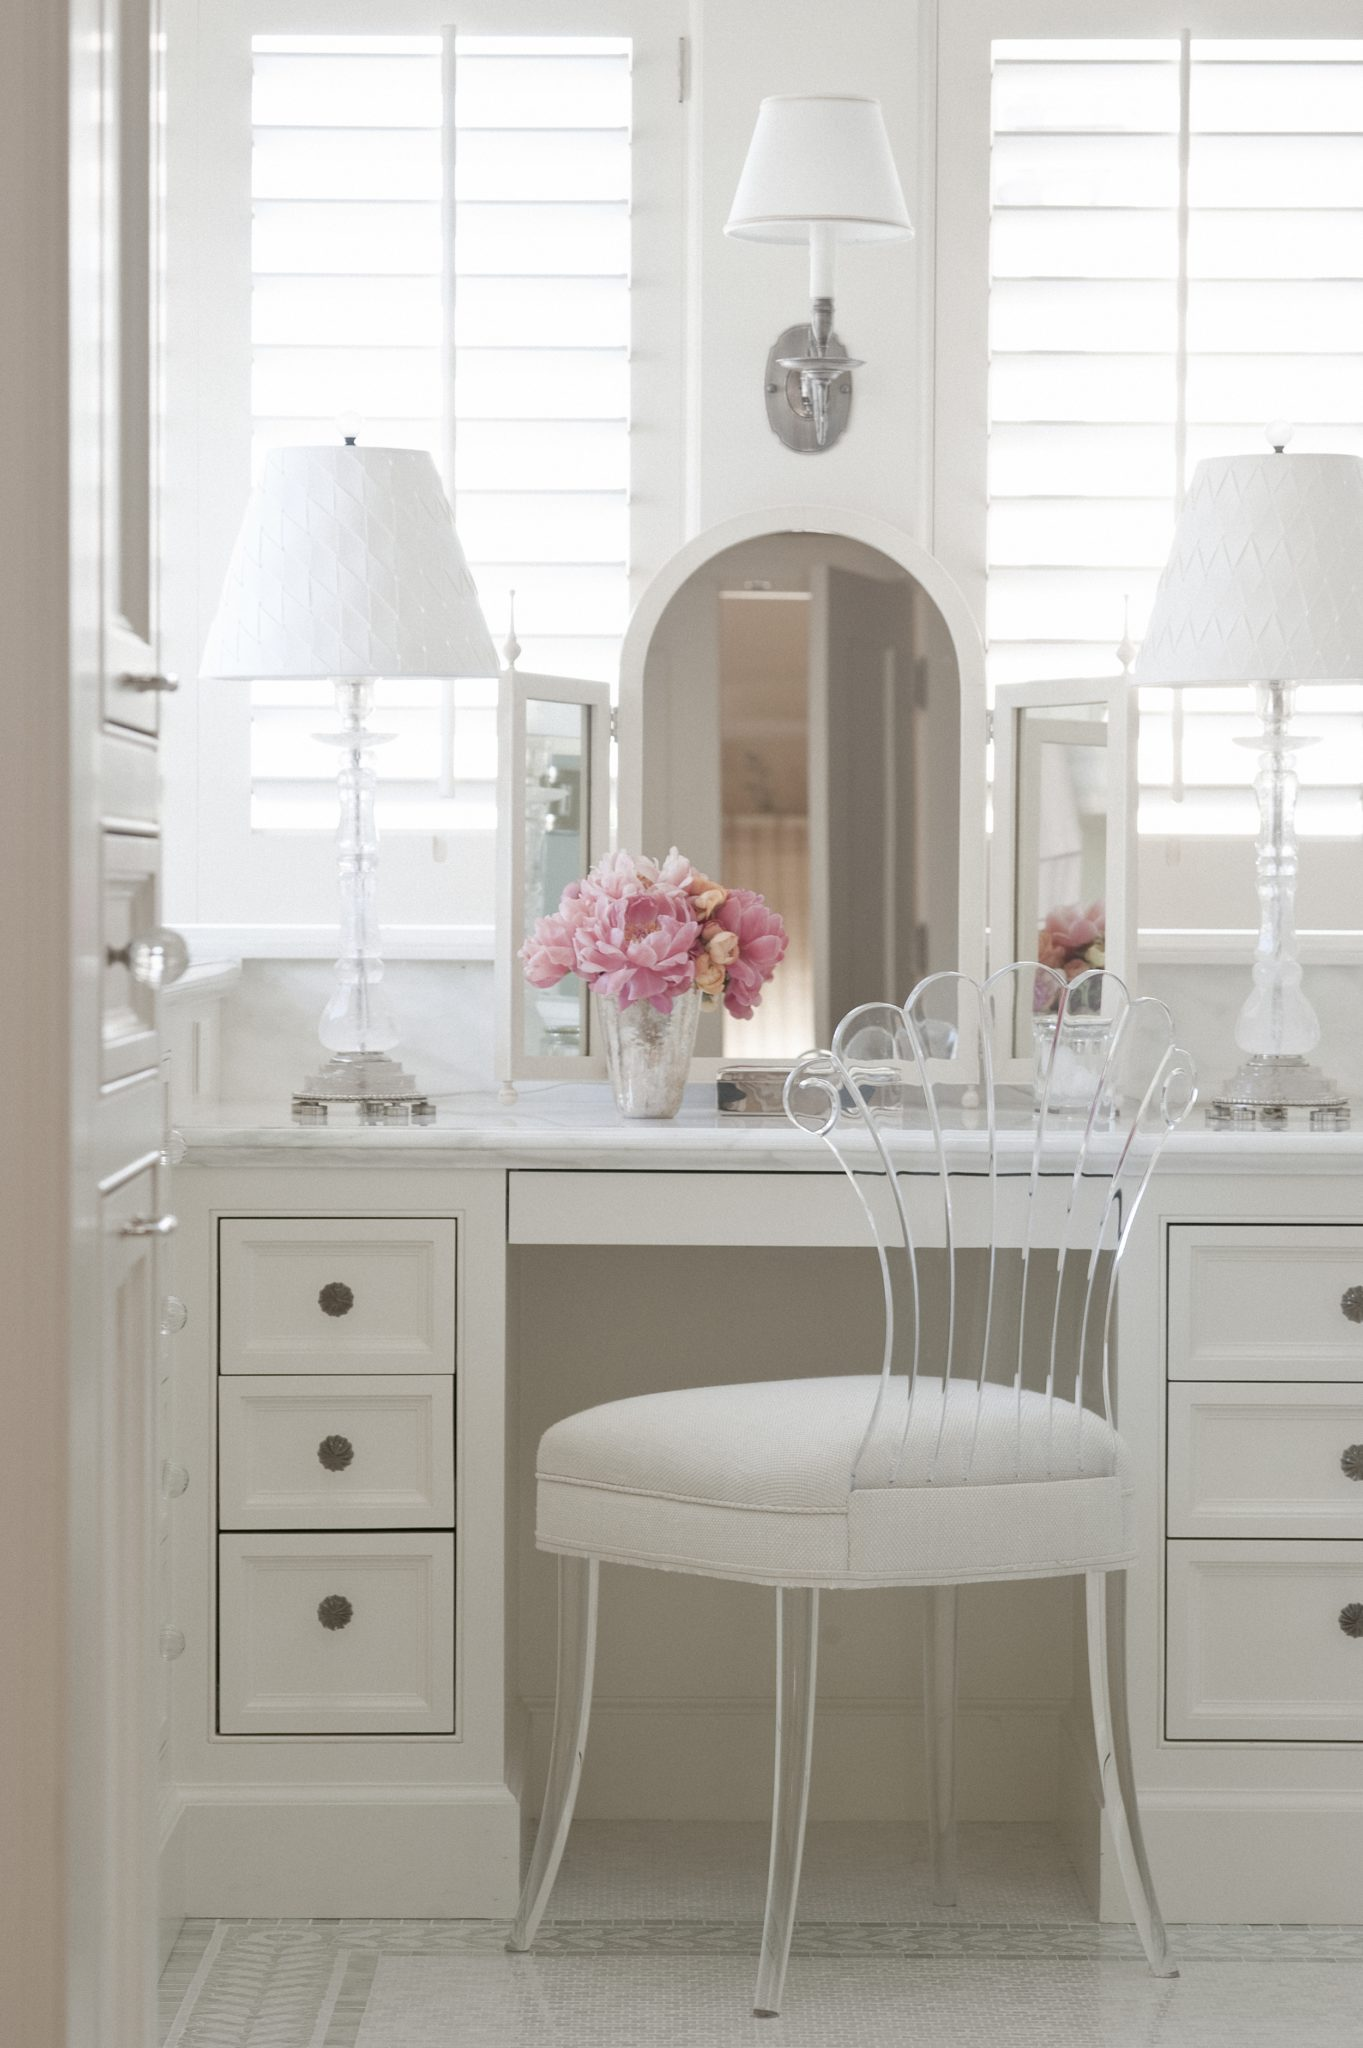 A chic shagreen dressing table mirrorfrom Newel in New Yorkadds polish to the master bath.